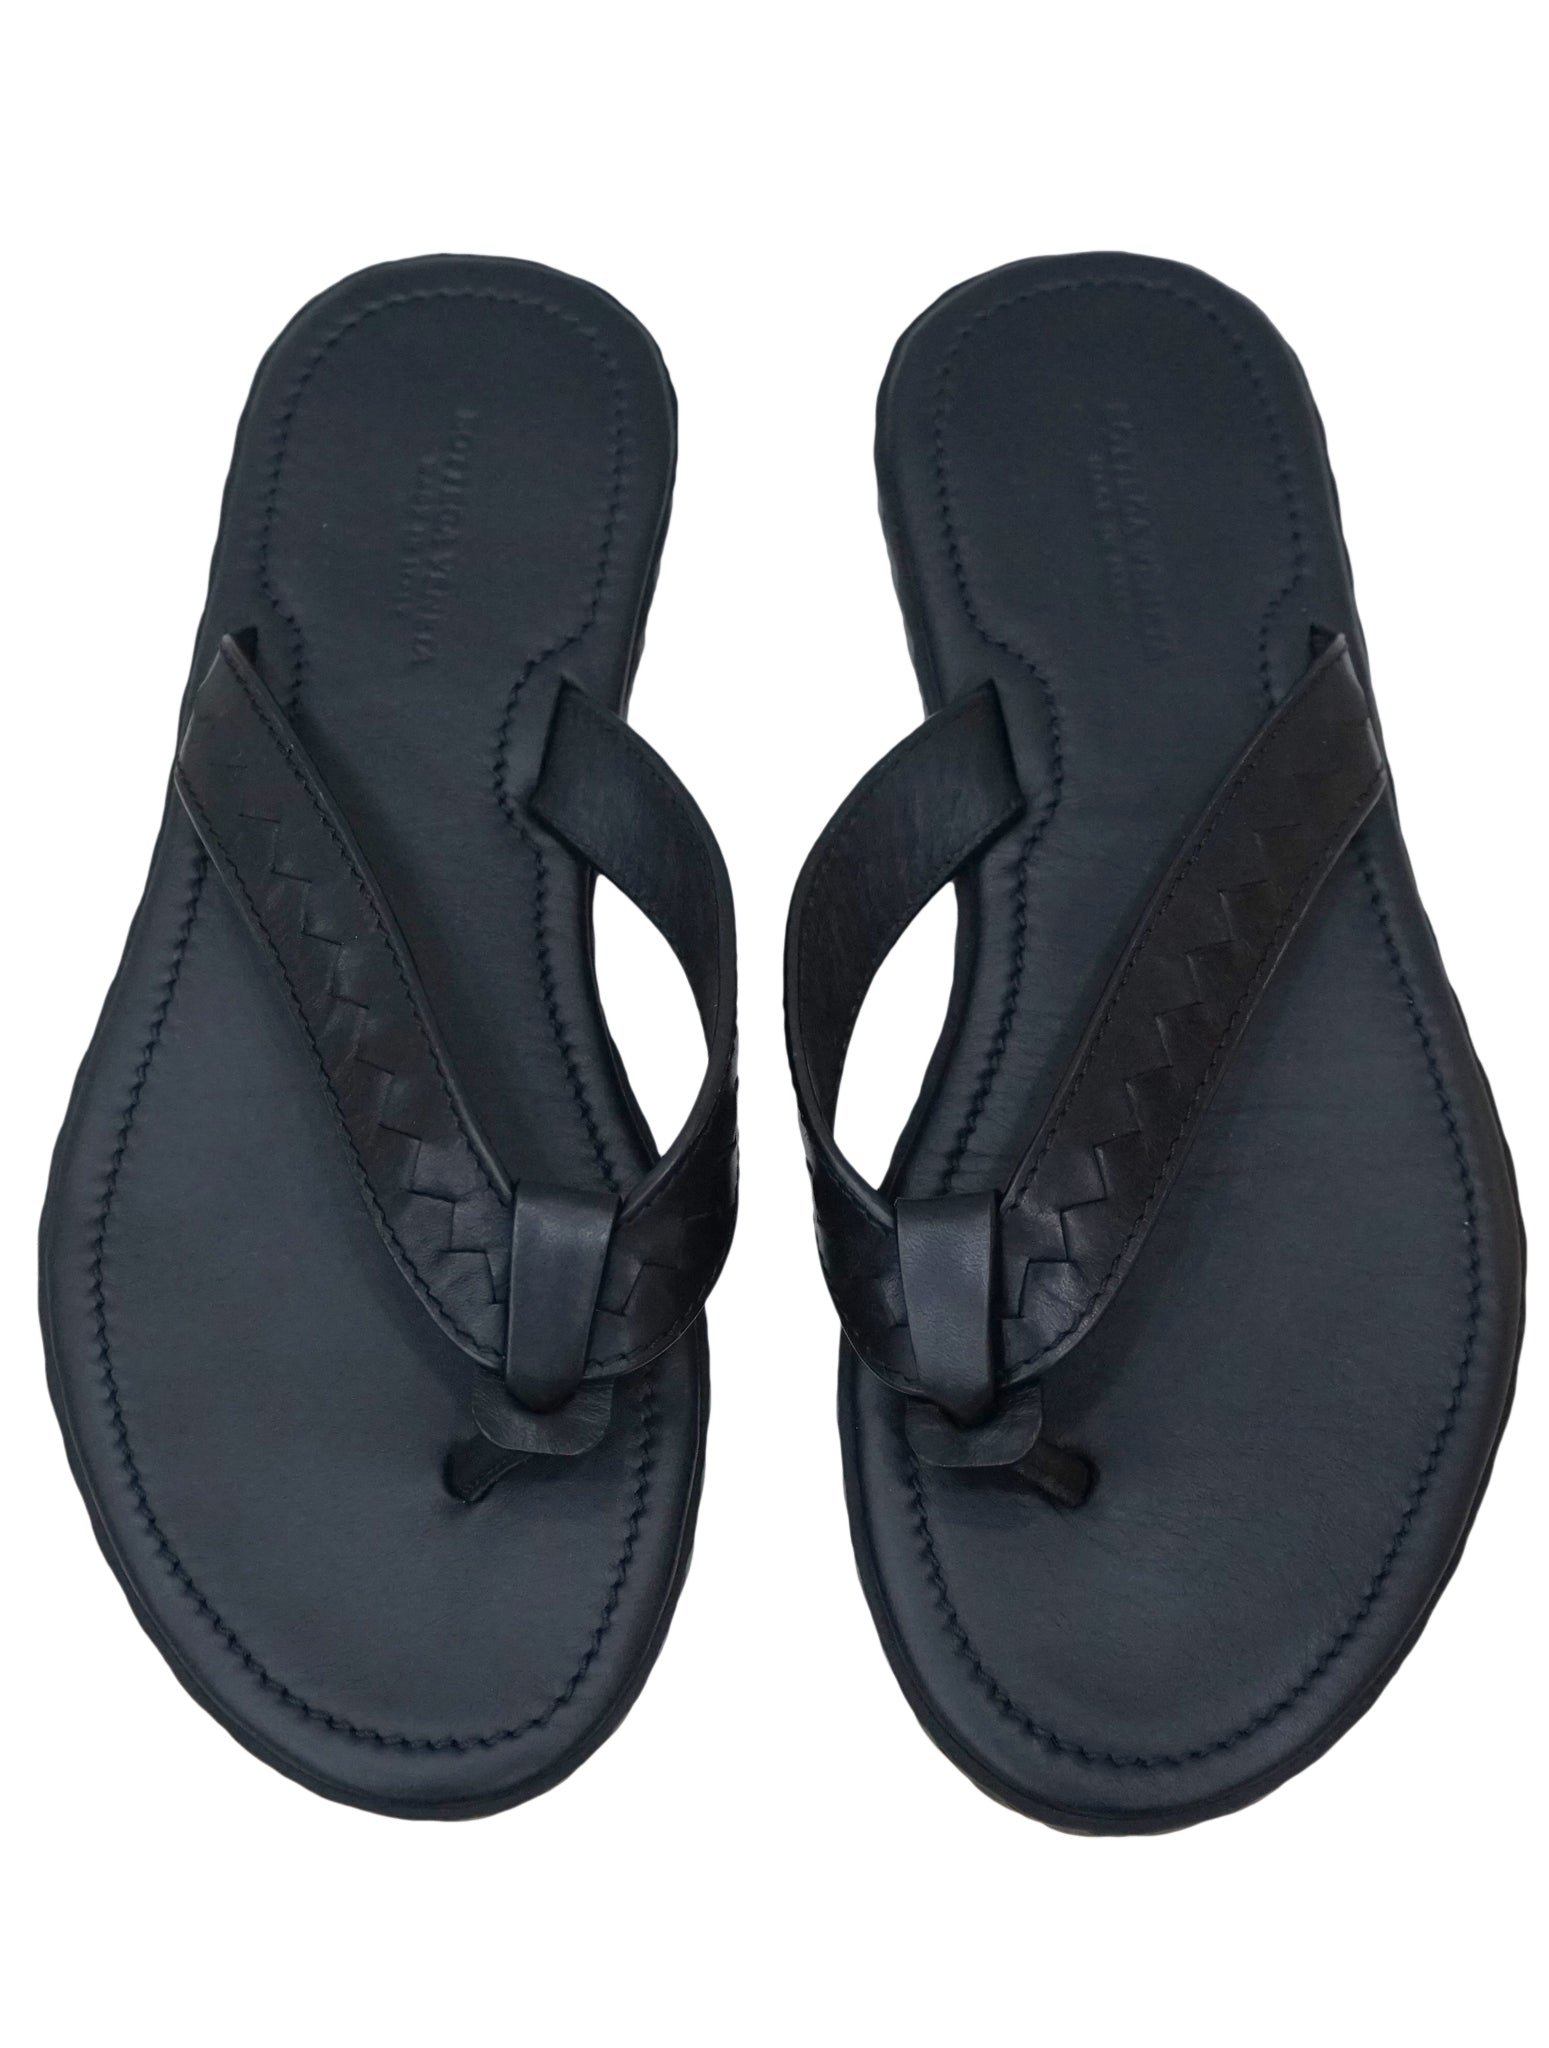 BLACK LEATHER FLIP FLOPS